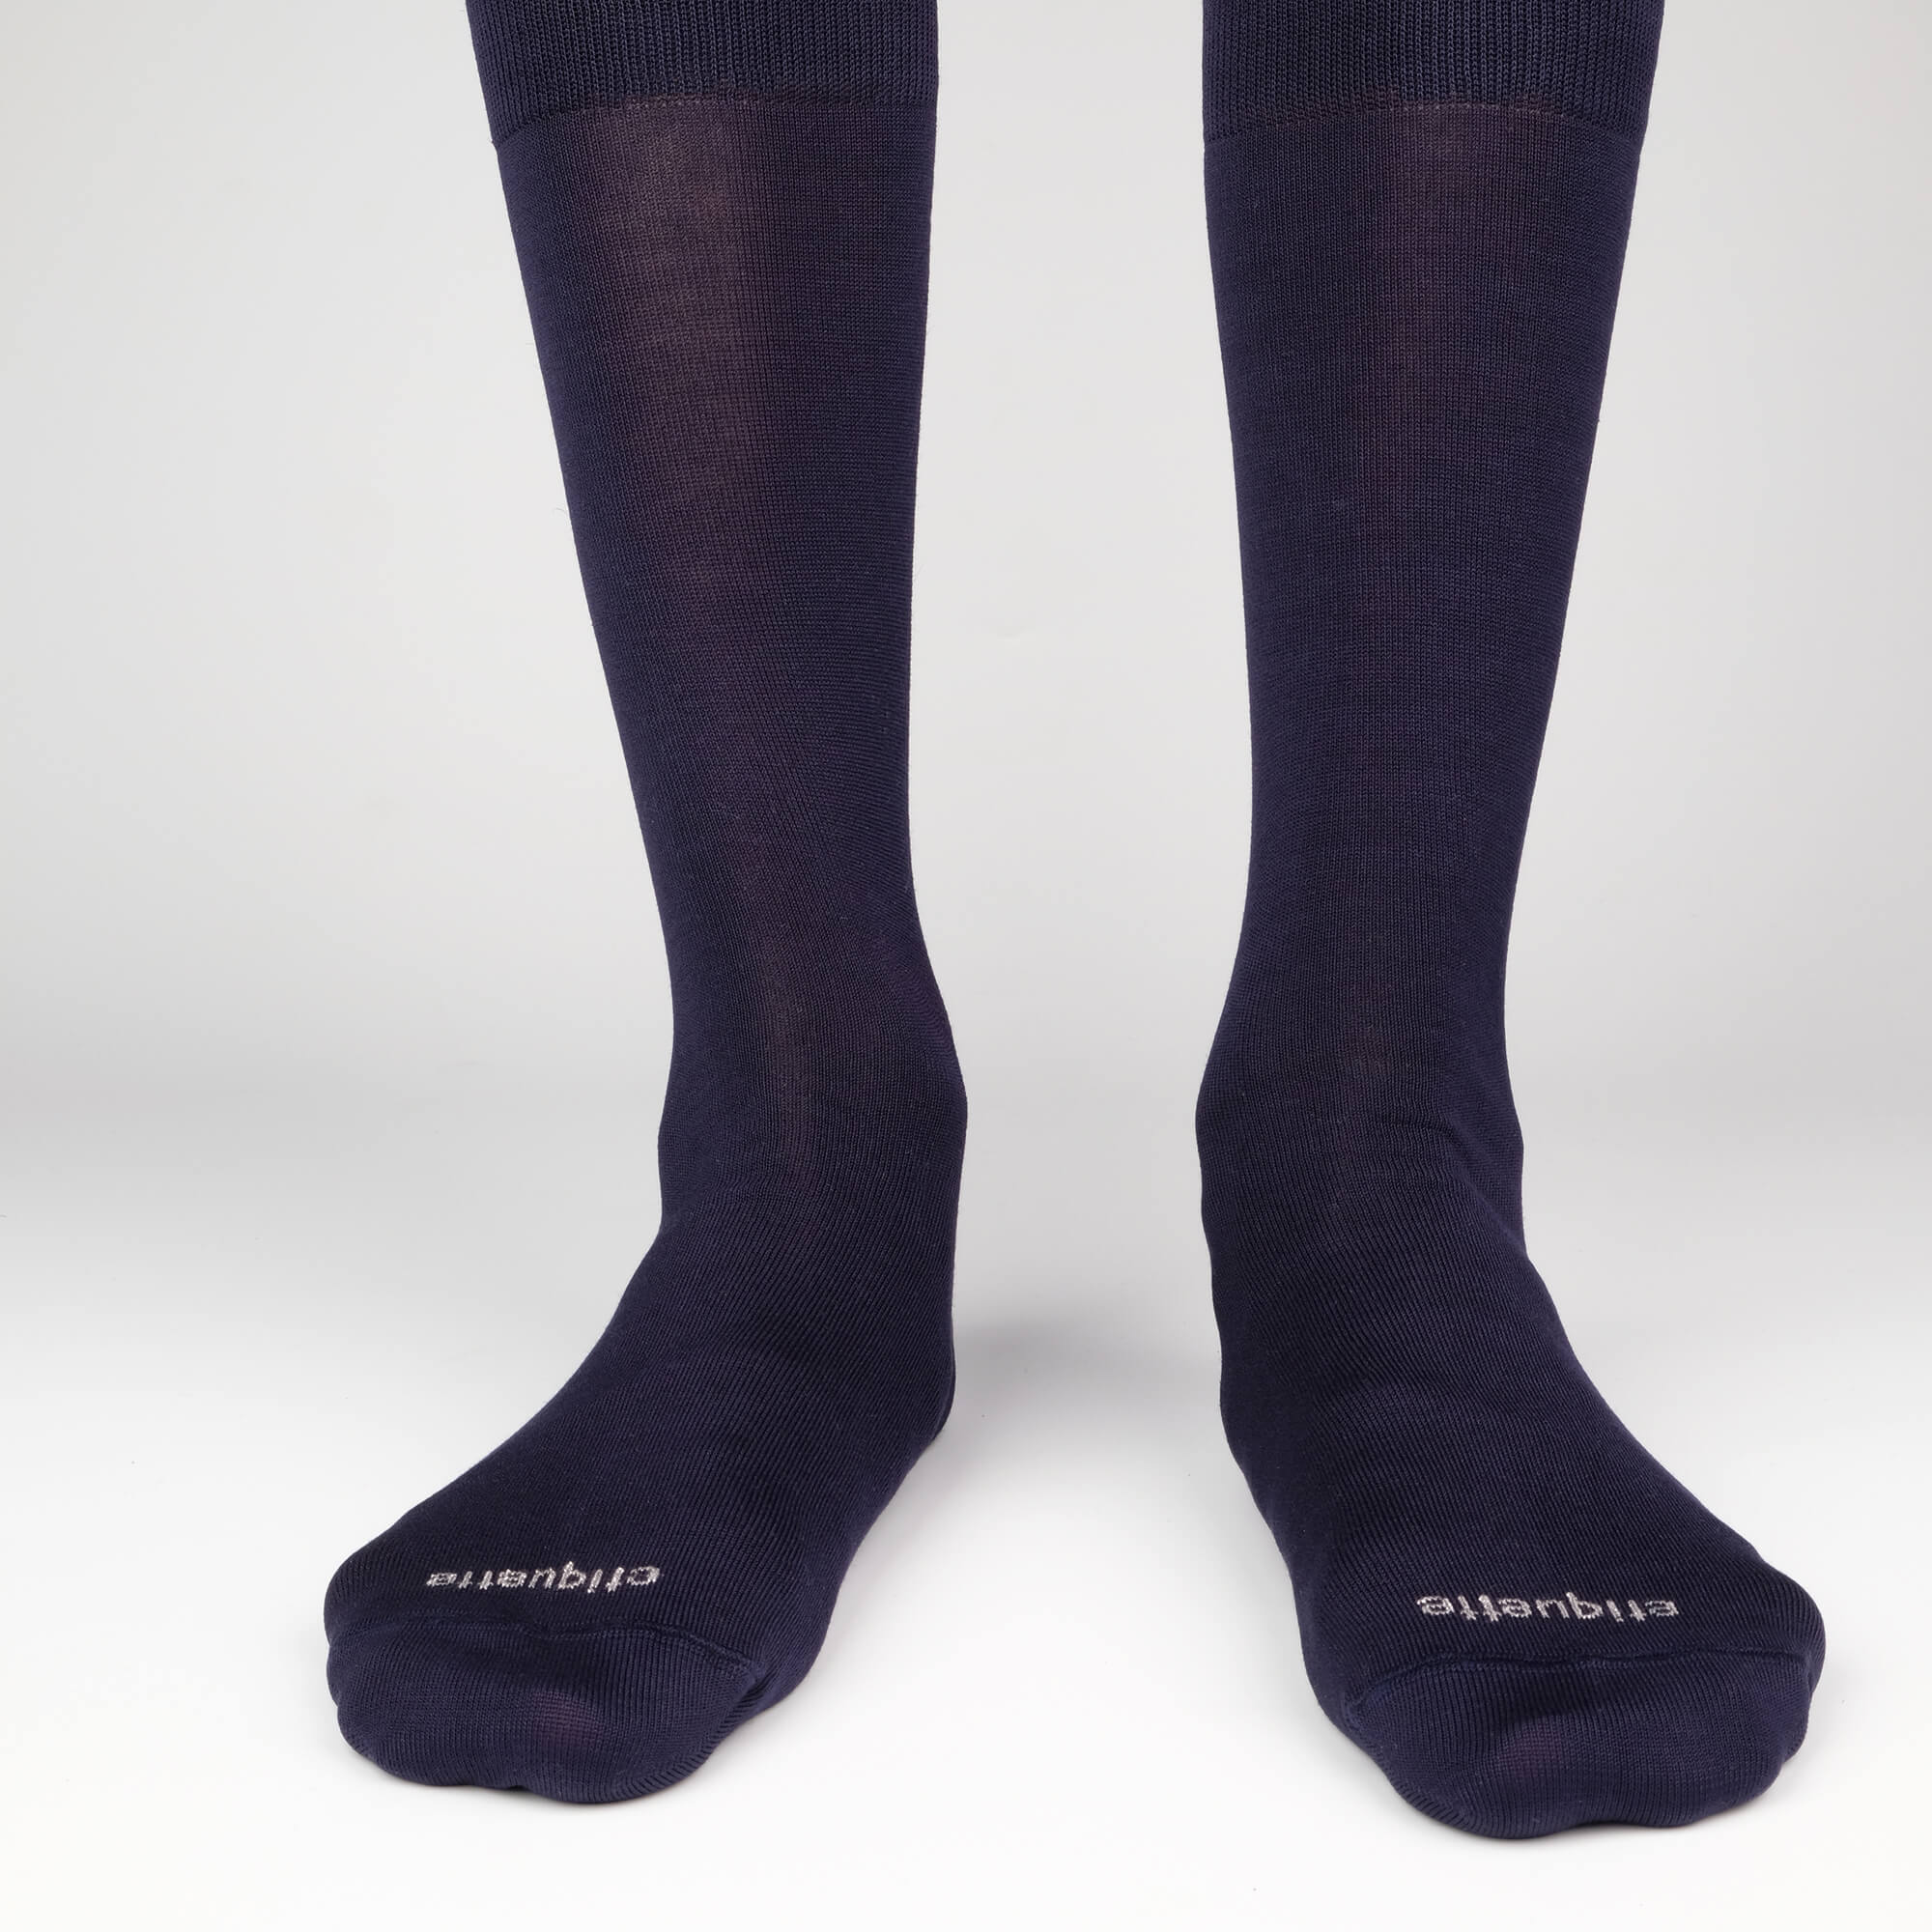 Mens Socks - Men's Crew Dress Socks 3 Pack - Navy⎪Etiquette Clothiers